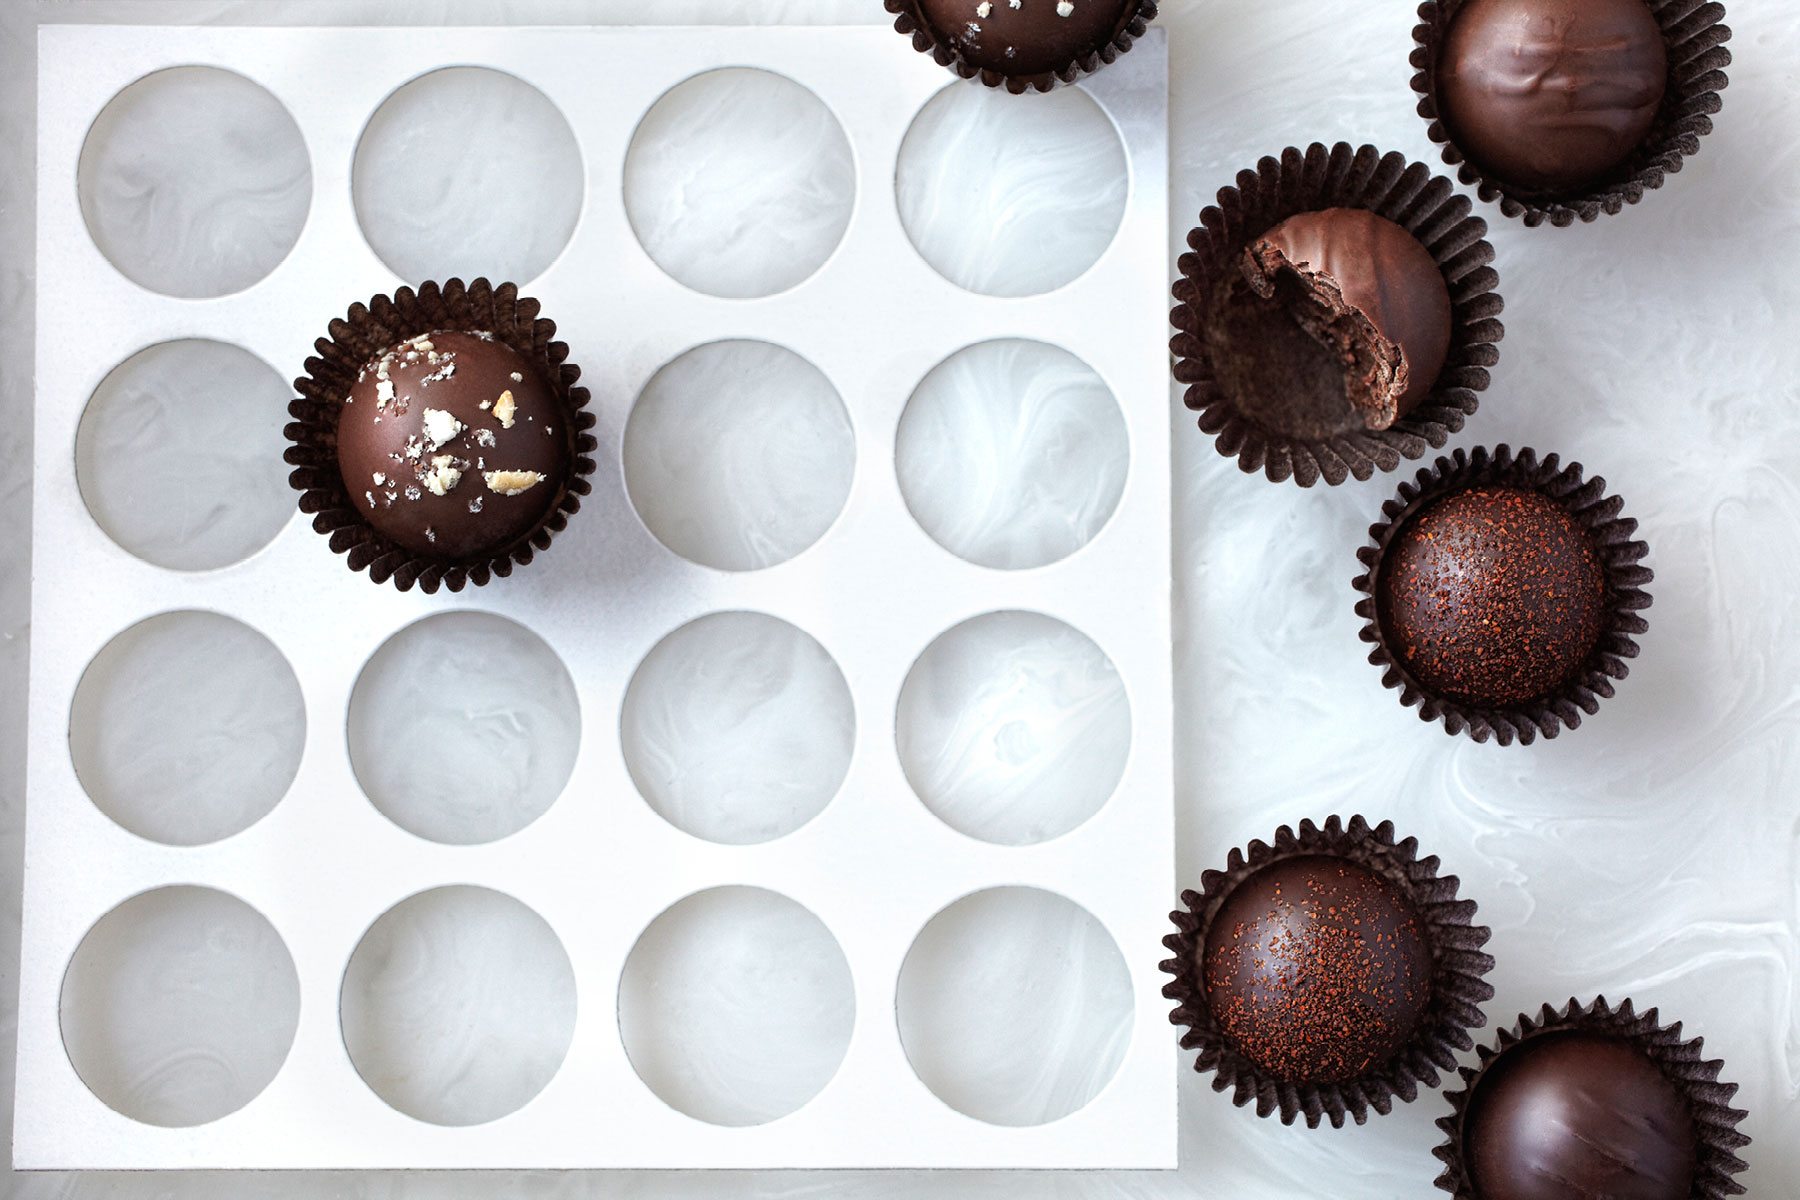 Marx_Food_Photography_chocolate_bonbons_truffle